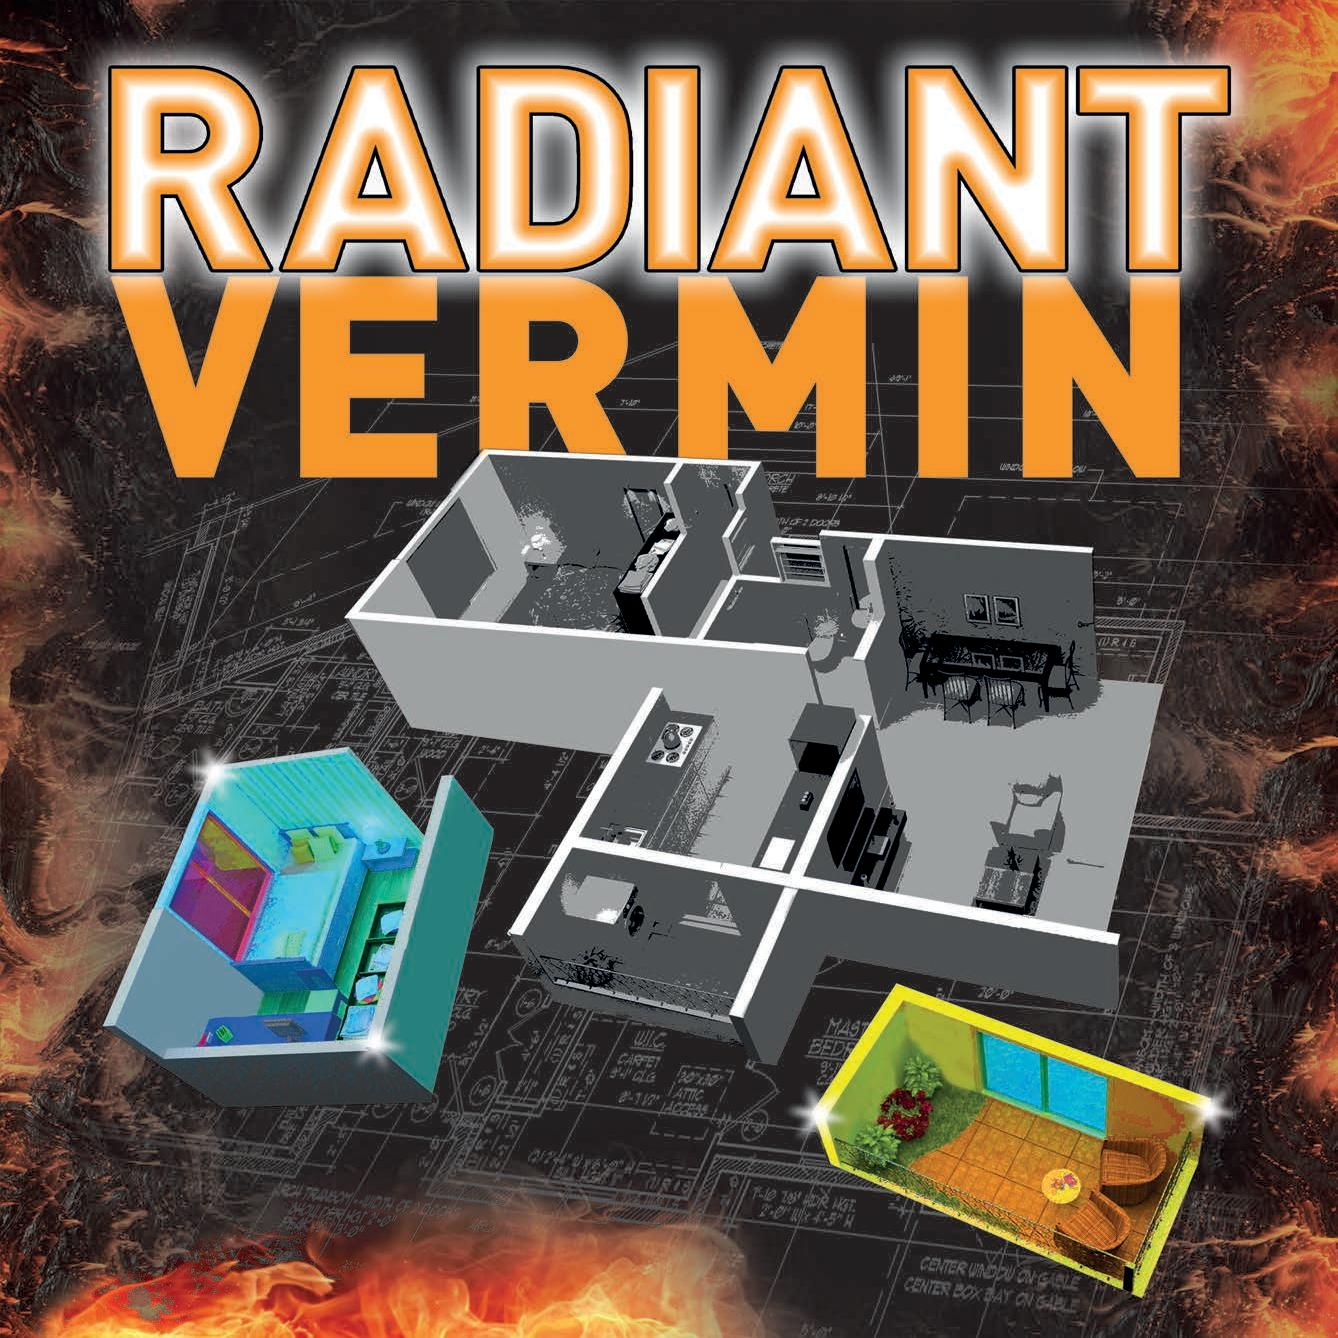 Radiant Vermin at the Tabard Theatre Chiswick